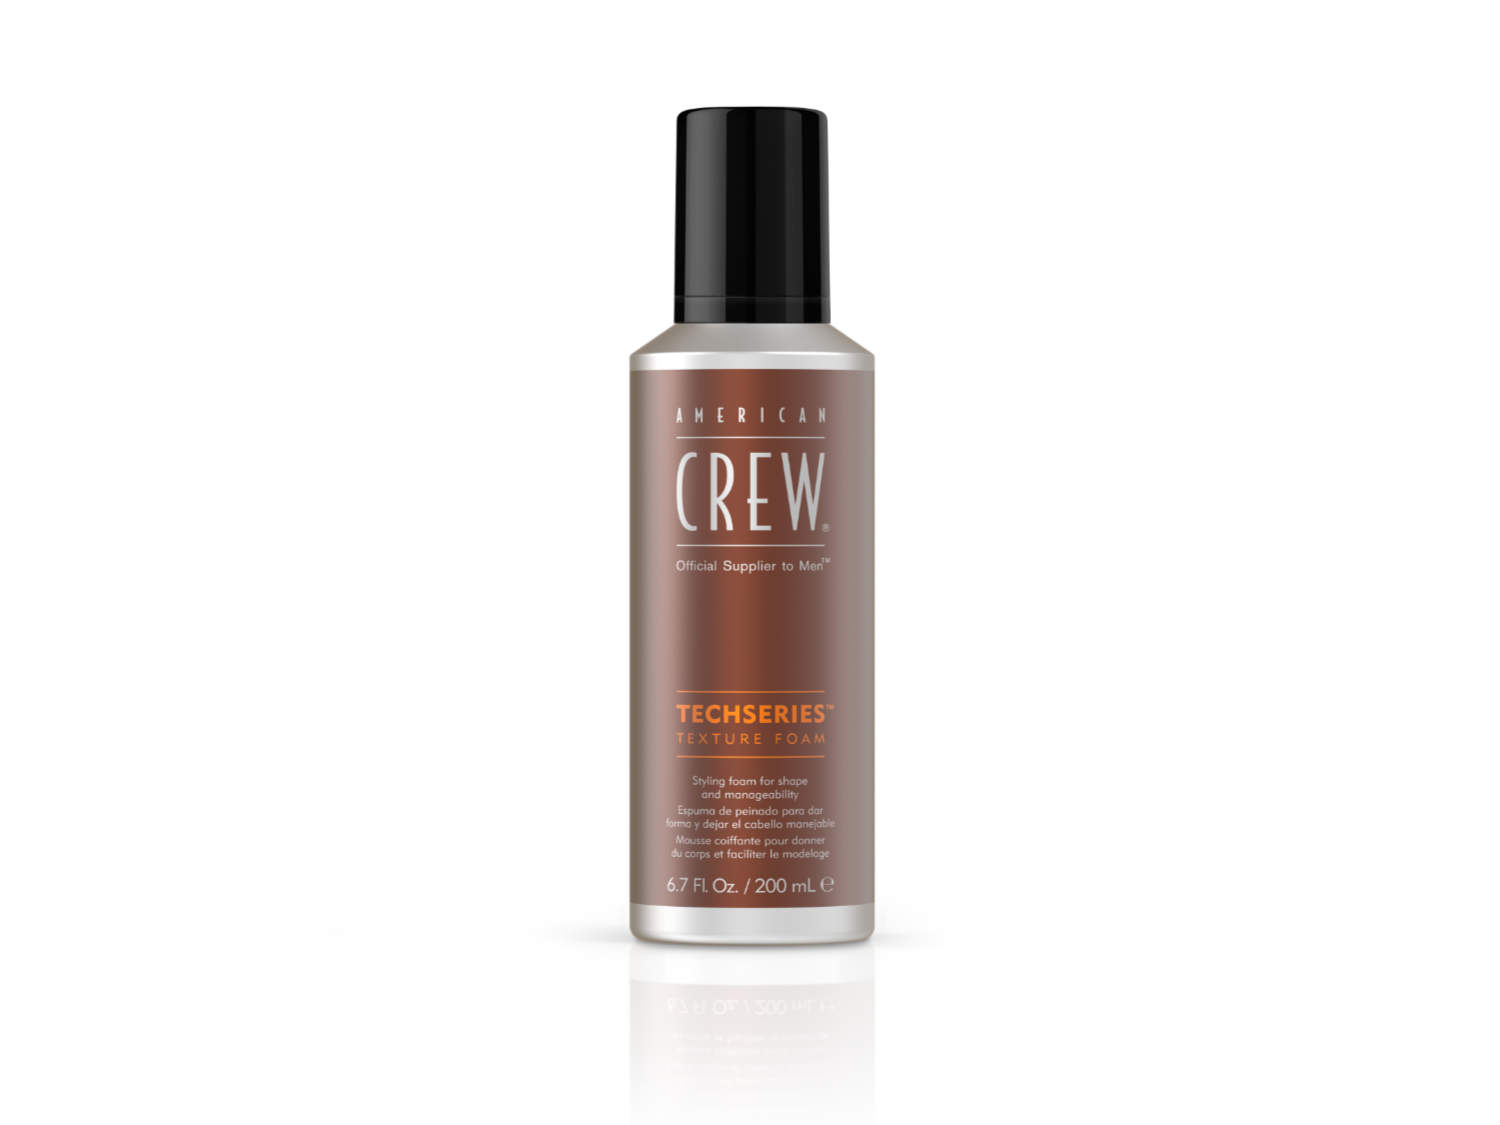 Arma Beauty - American Crew - Tech Series Texture Foam